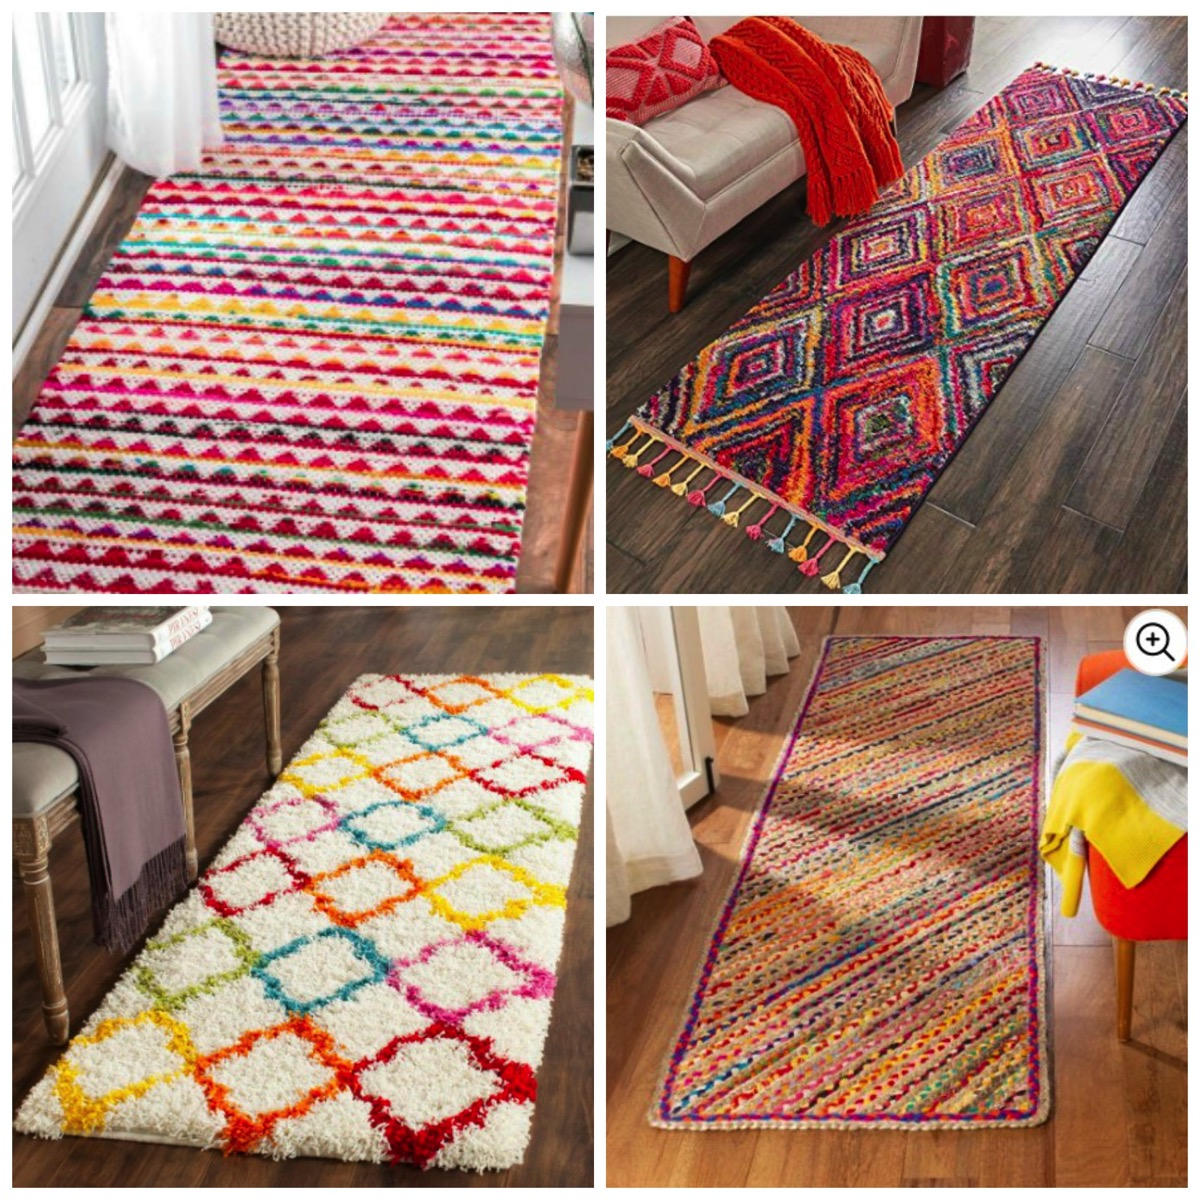 Colorful rainbow runner rugs for home vibrant and unique